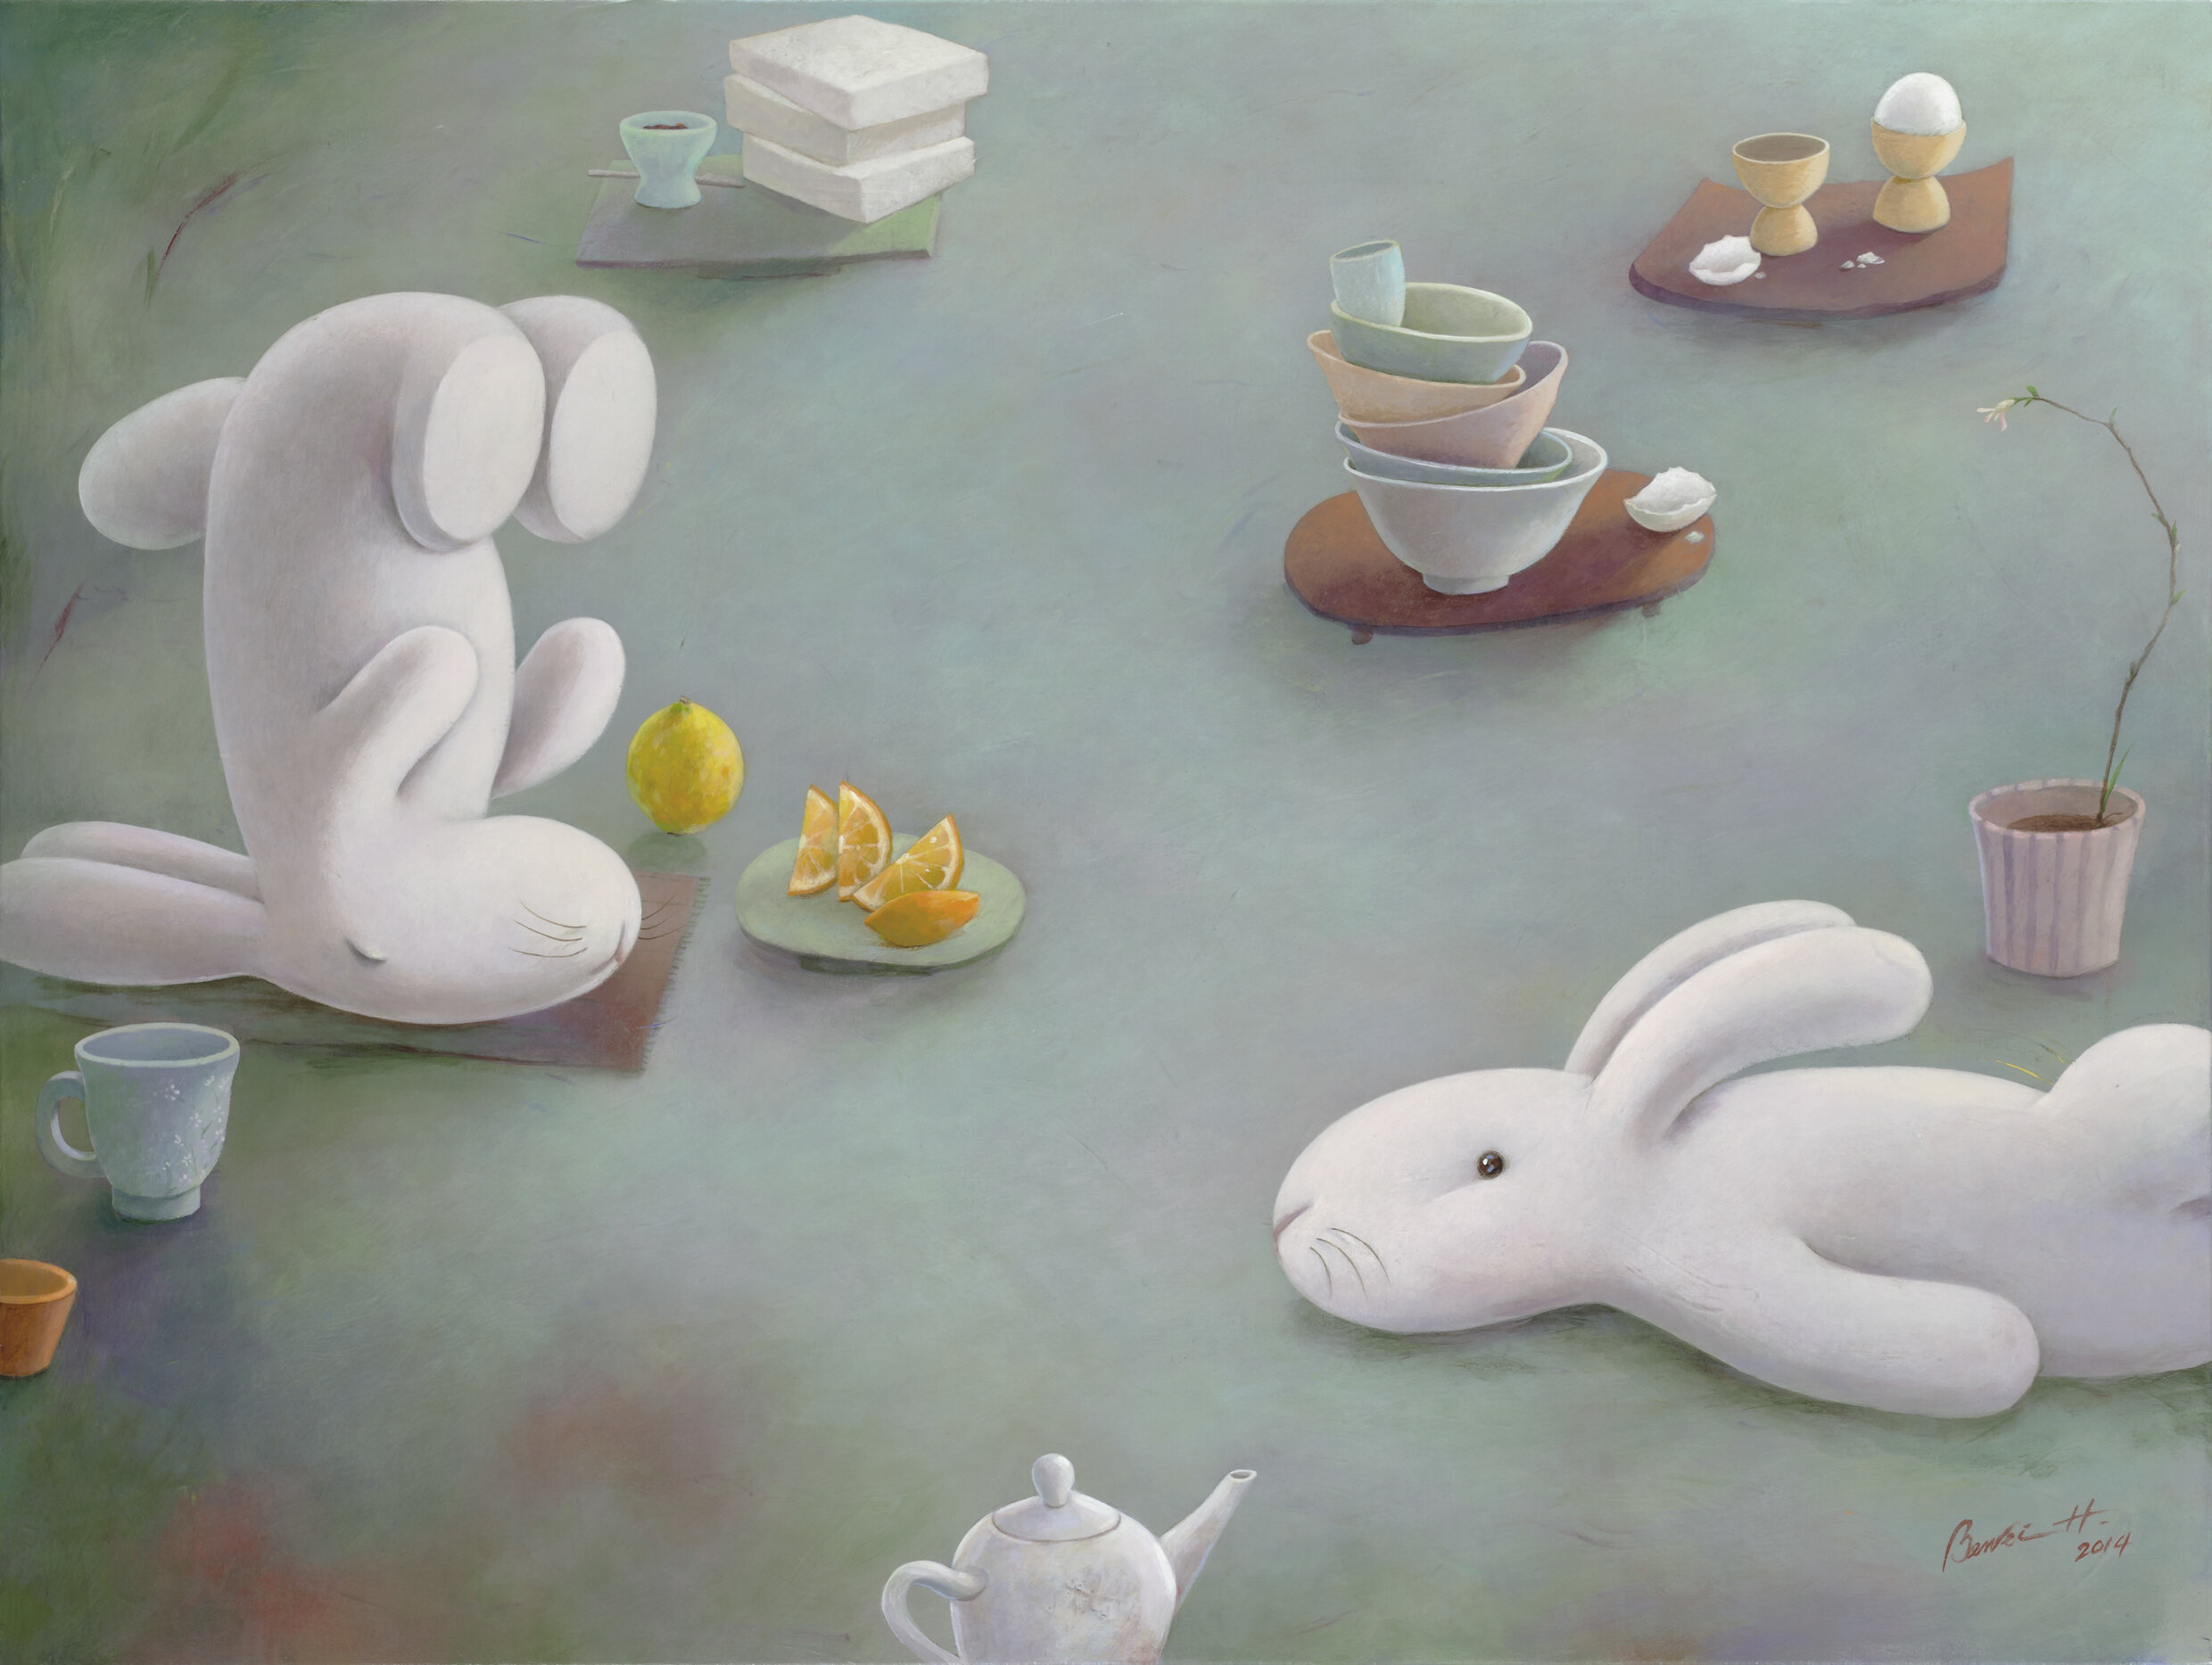 "om at the breakfast table 餐桌上的枯山水 30x40"", 2014, acrylic on canvas"